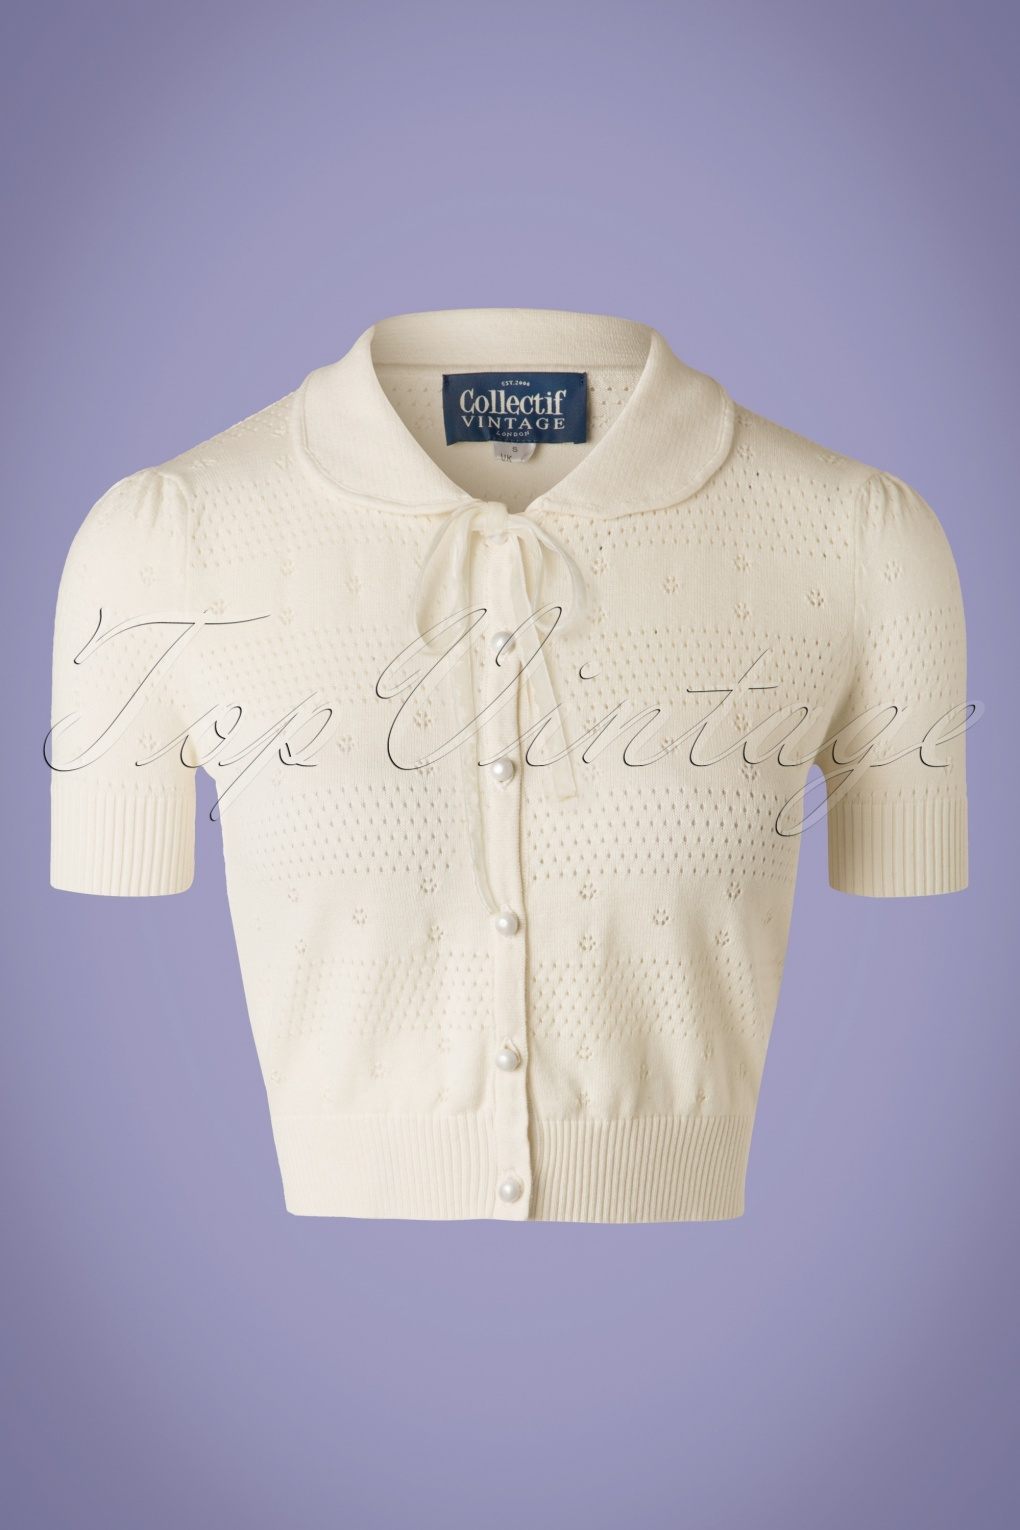 1950s Sweaters, 50s Cardigans, Twin Sweater Sets 40s Carly Cardigan in Ivory White £37.78 AT vintagedancer.com